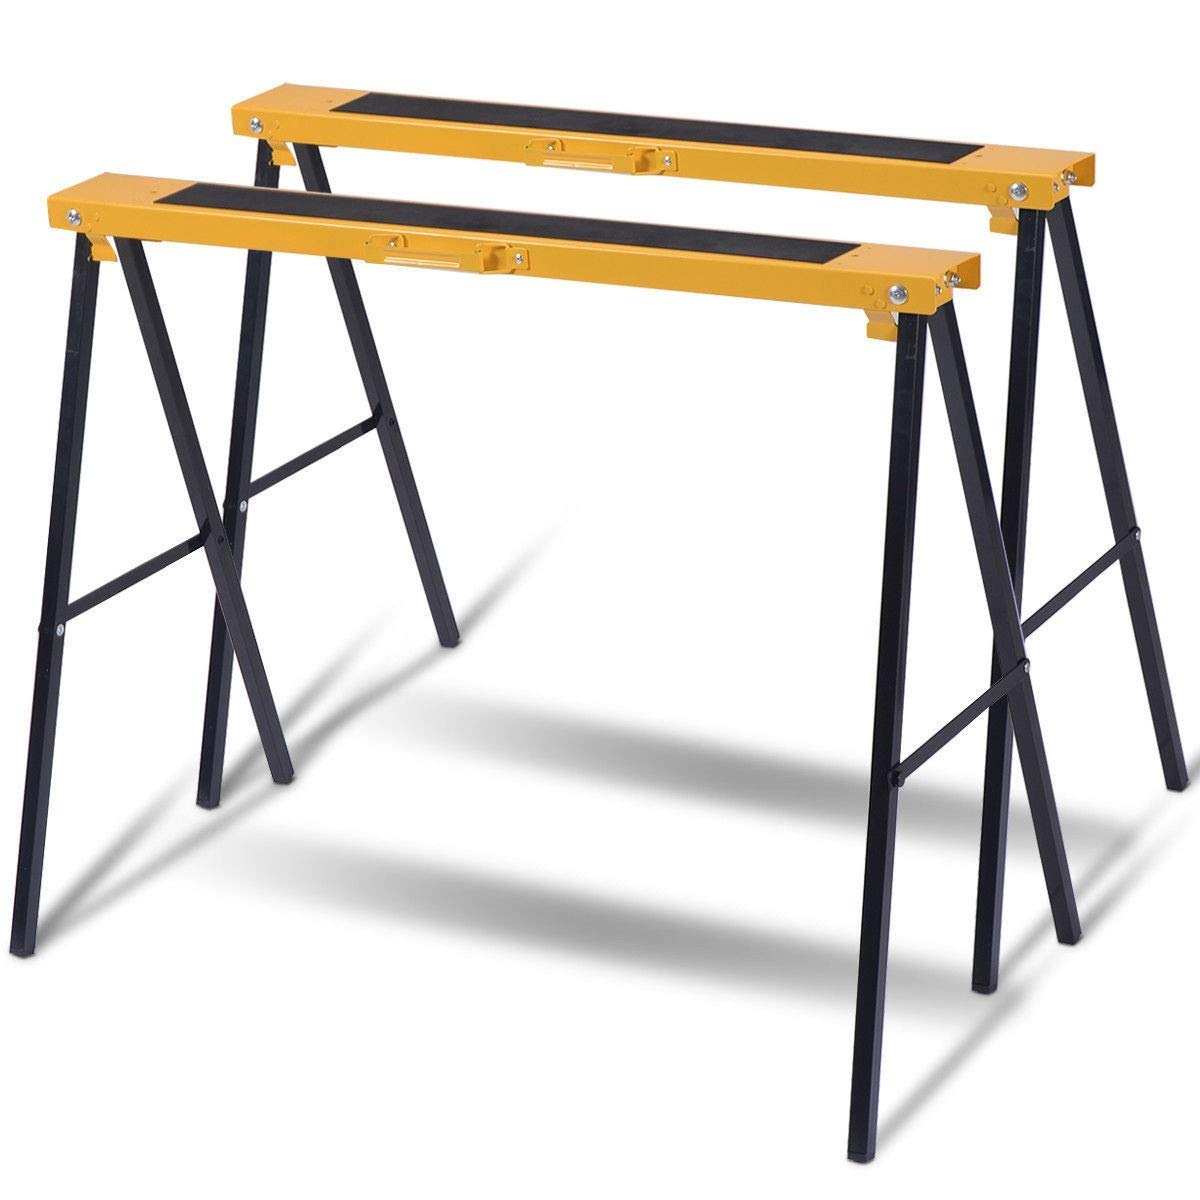 Sawhorse Heavy Duty Folding 2 Pack Steel Portable Saw Horse Legs Pair Workshop MD Group by MD Group (Image #1)